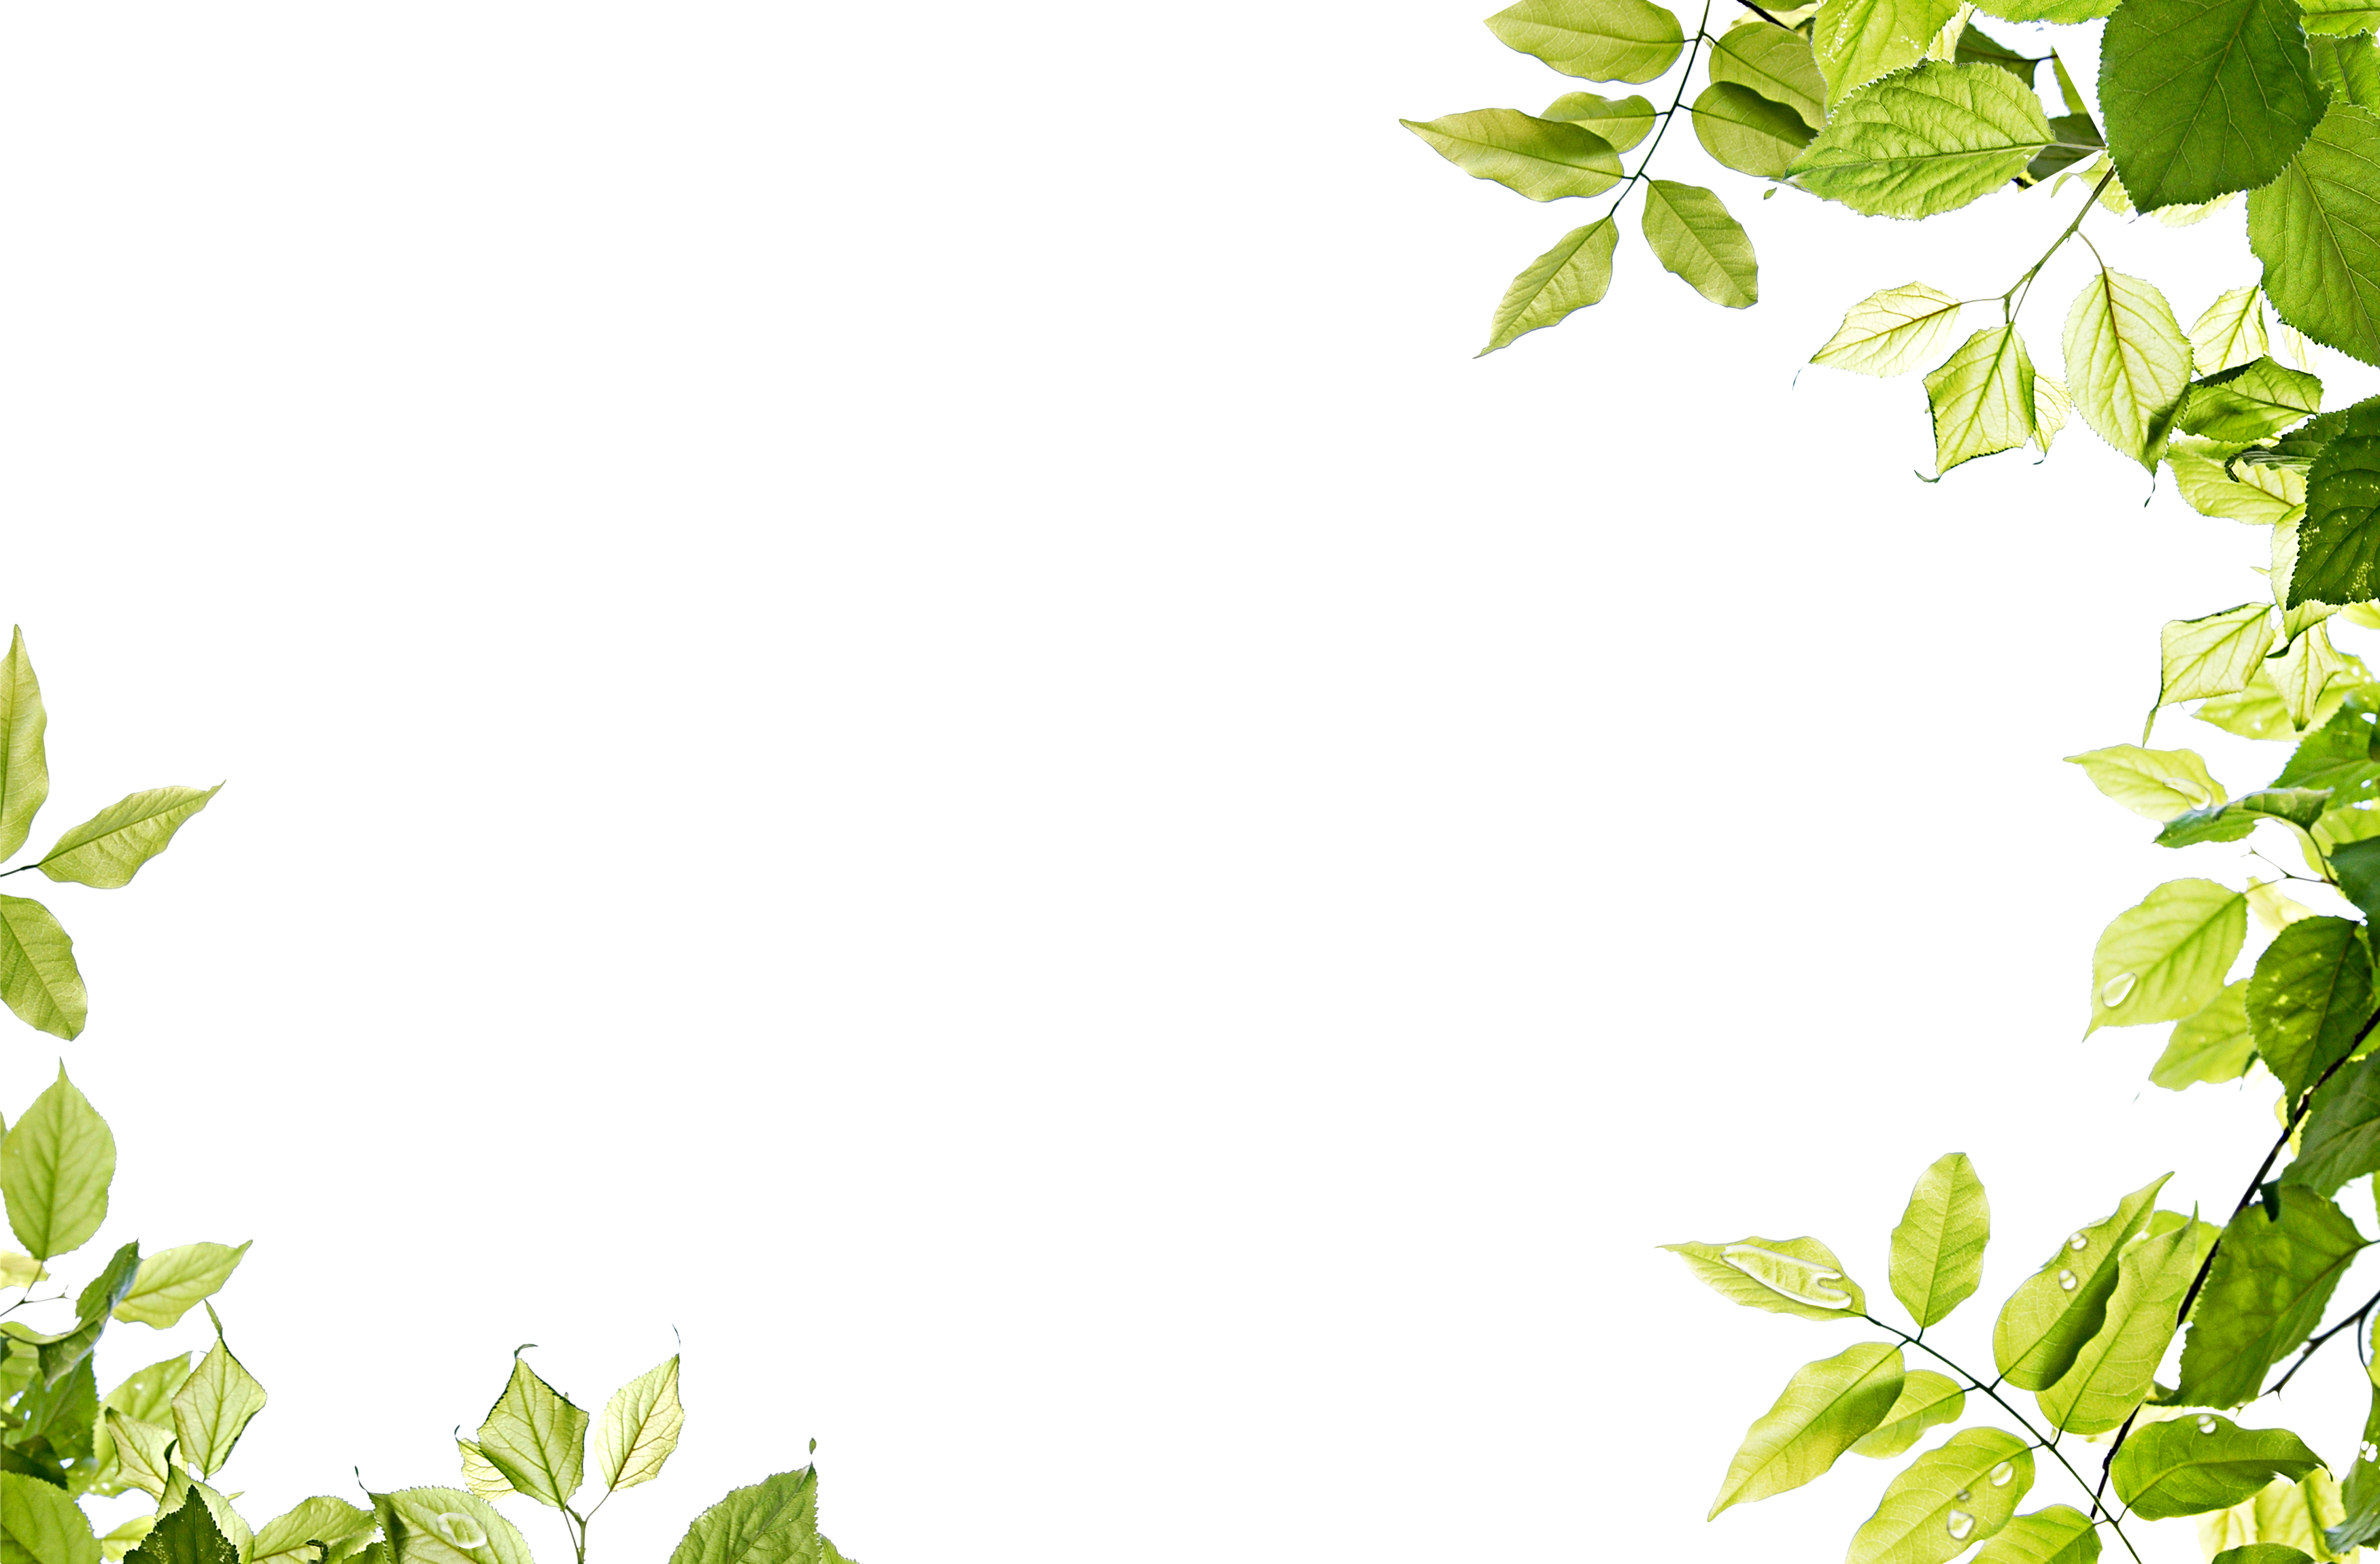 Vine frame png. Free download leaves transparent